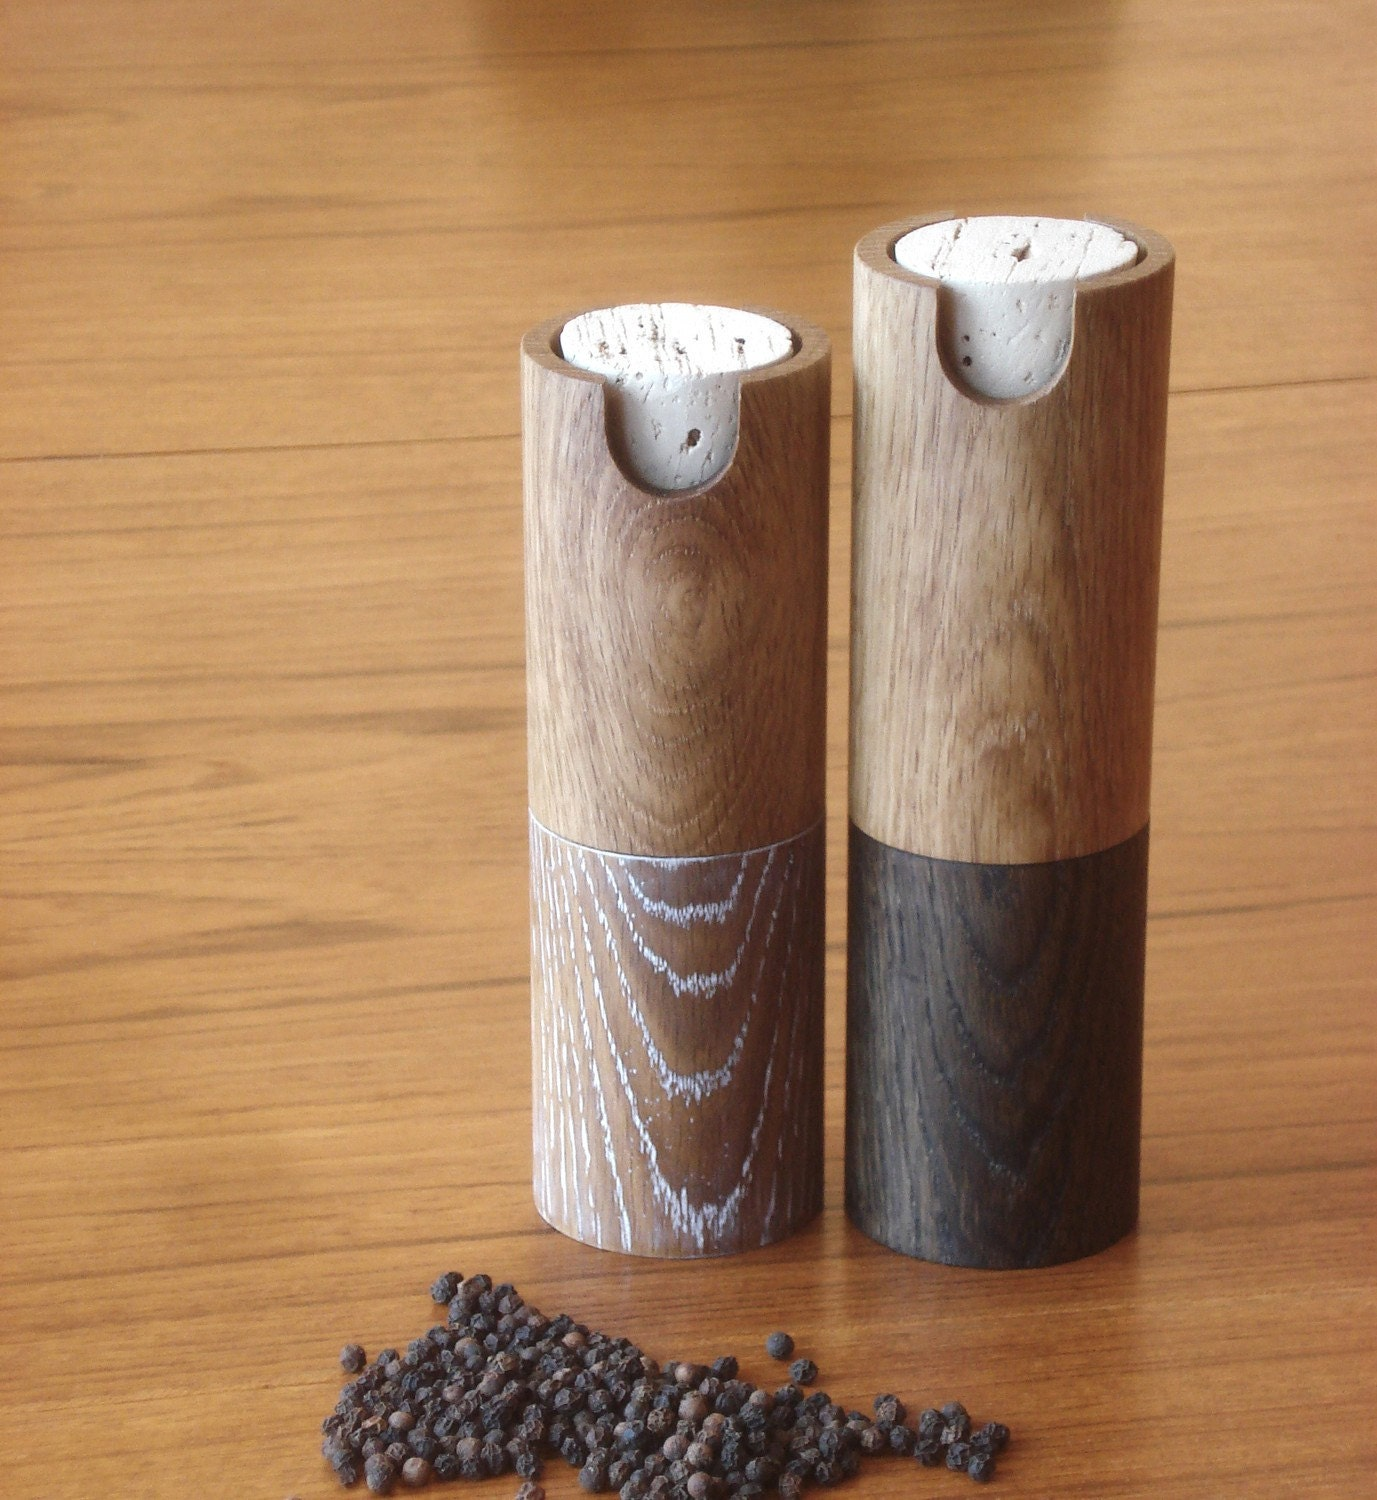 peppermill and salt grinder white oak pepper mill - 🔎zoom